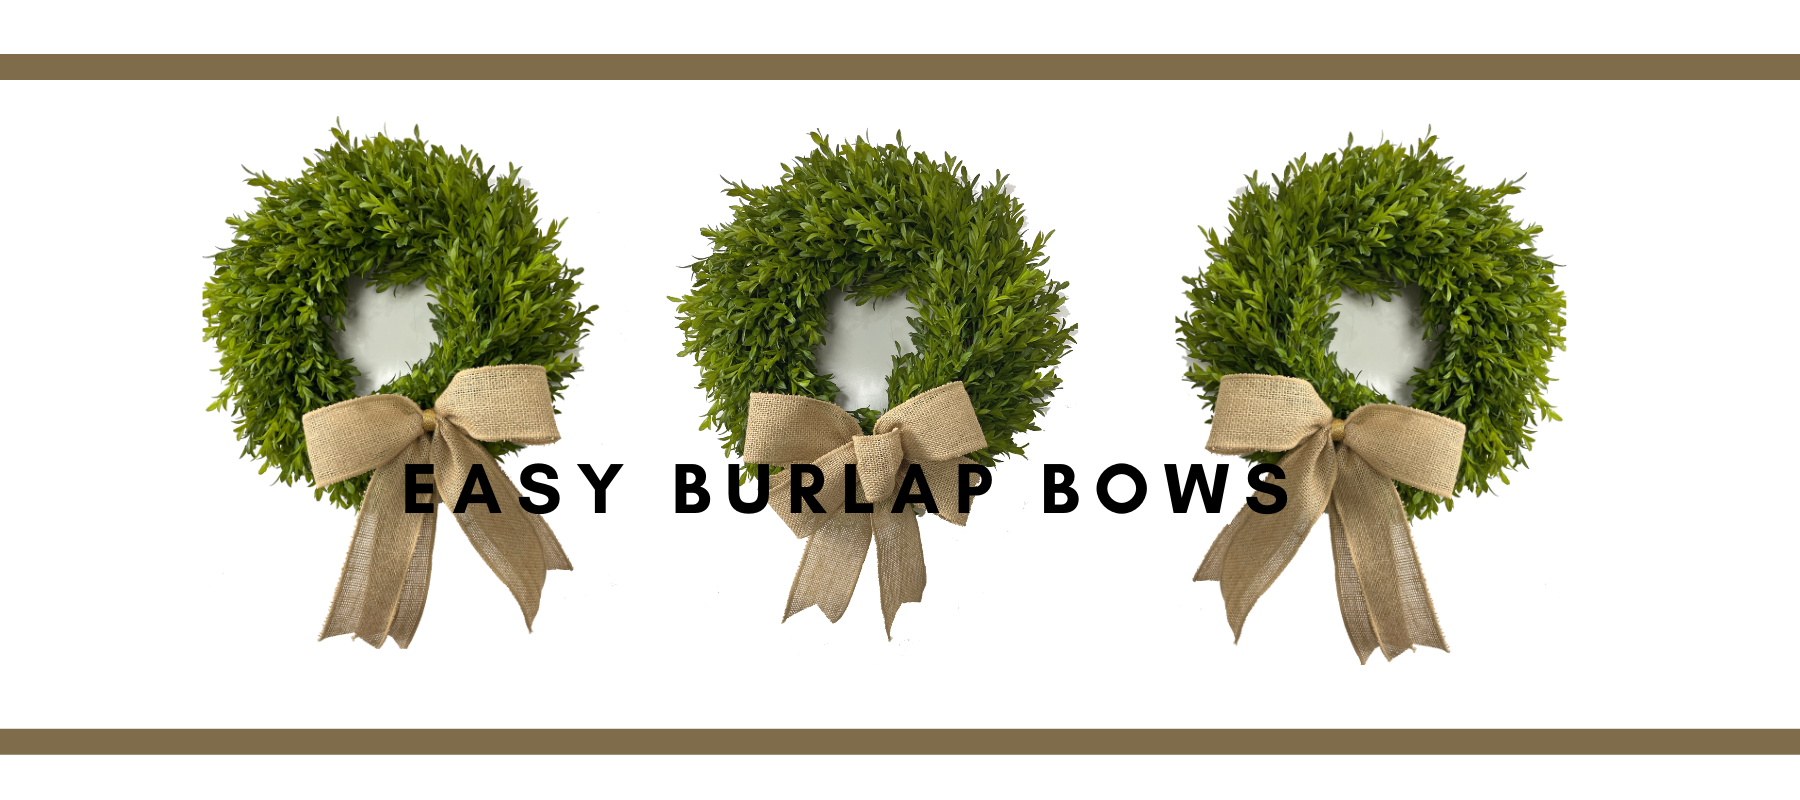 Two Ways to Make a Burlap Bow